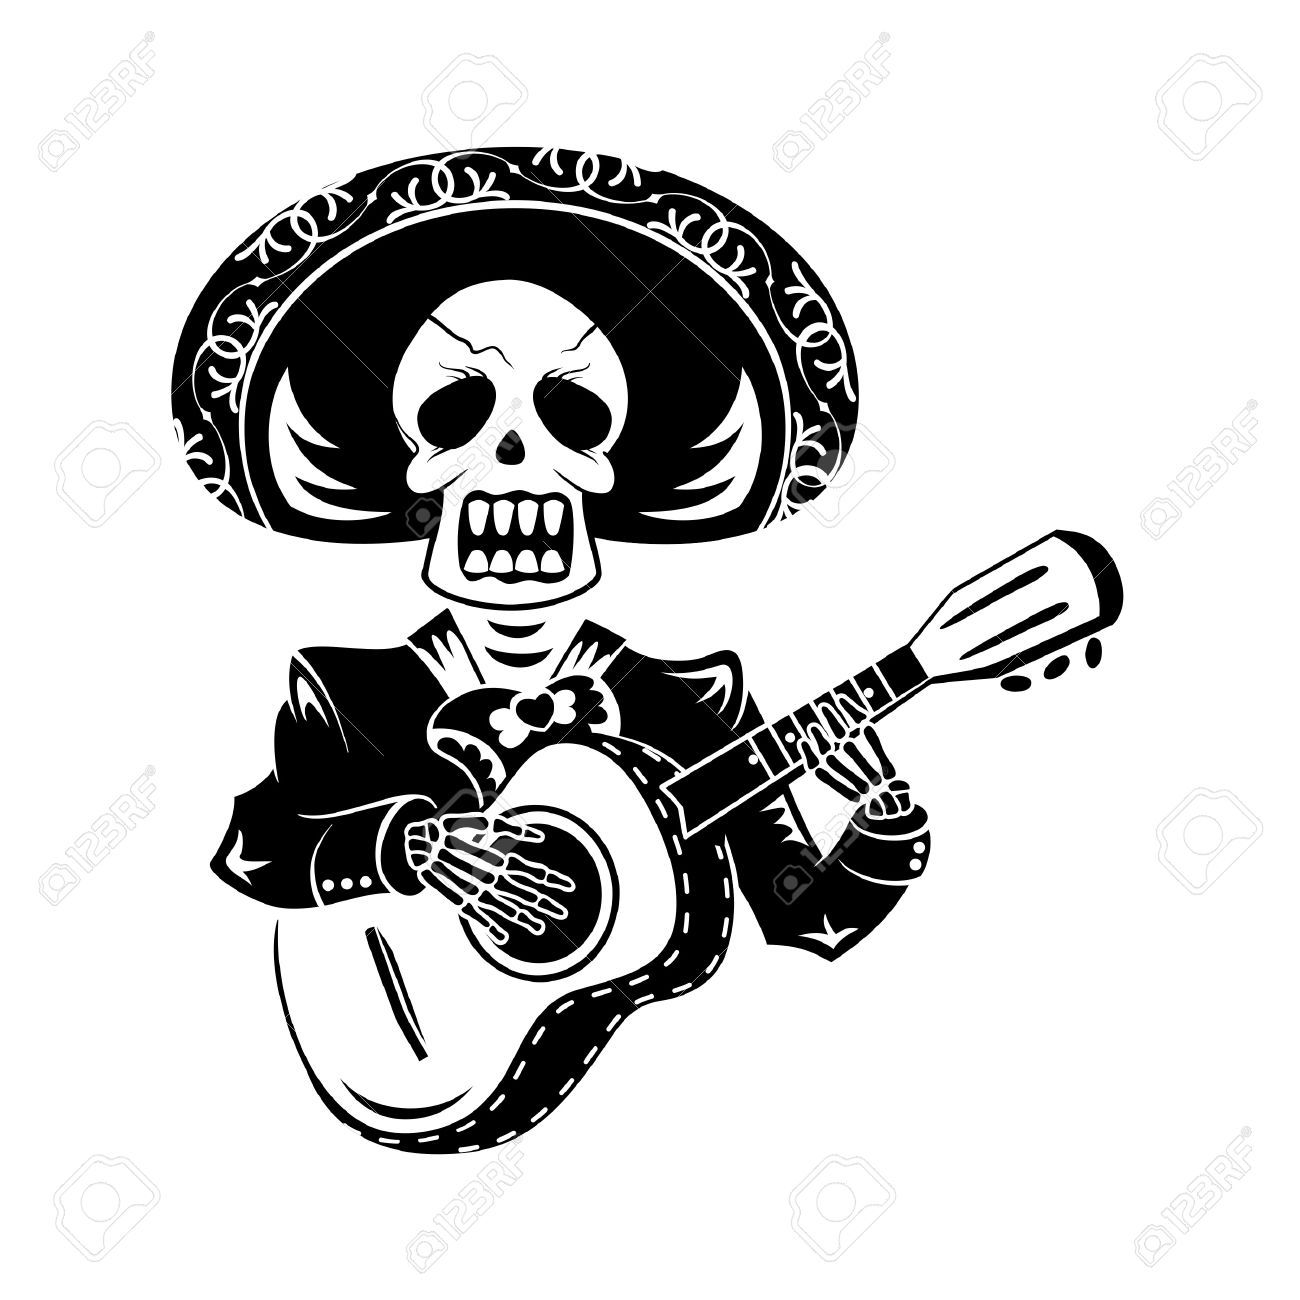 Image result for day of the dead mariachi Skeleton